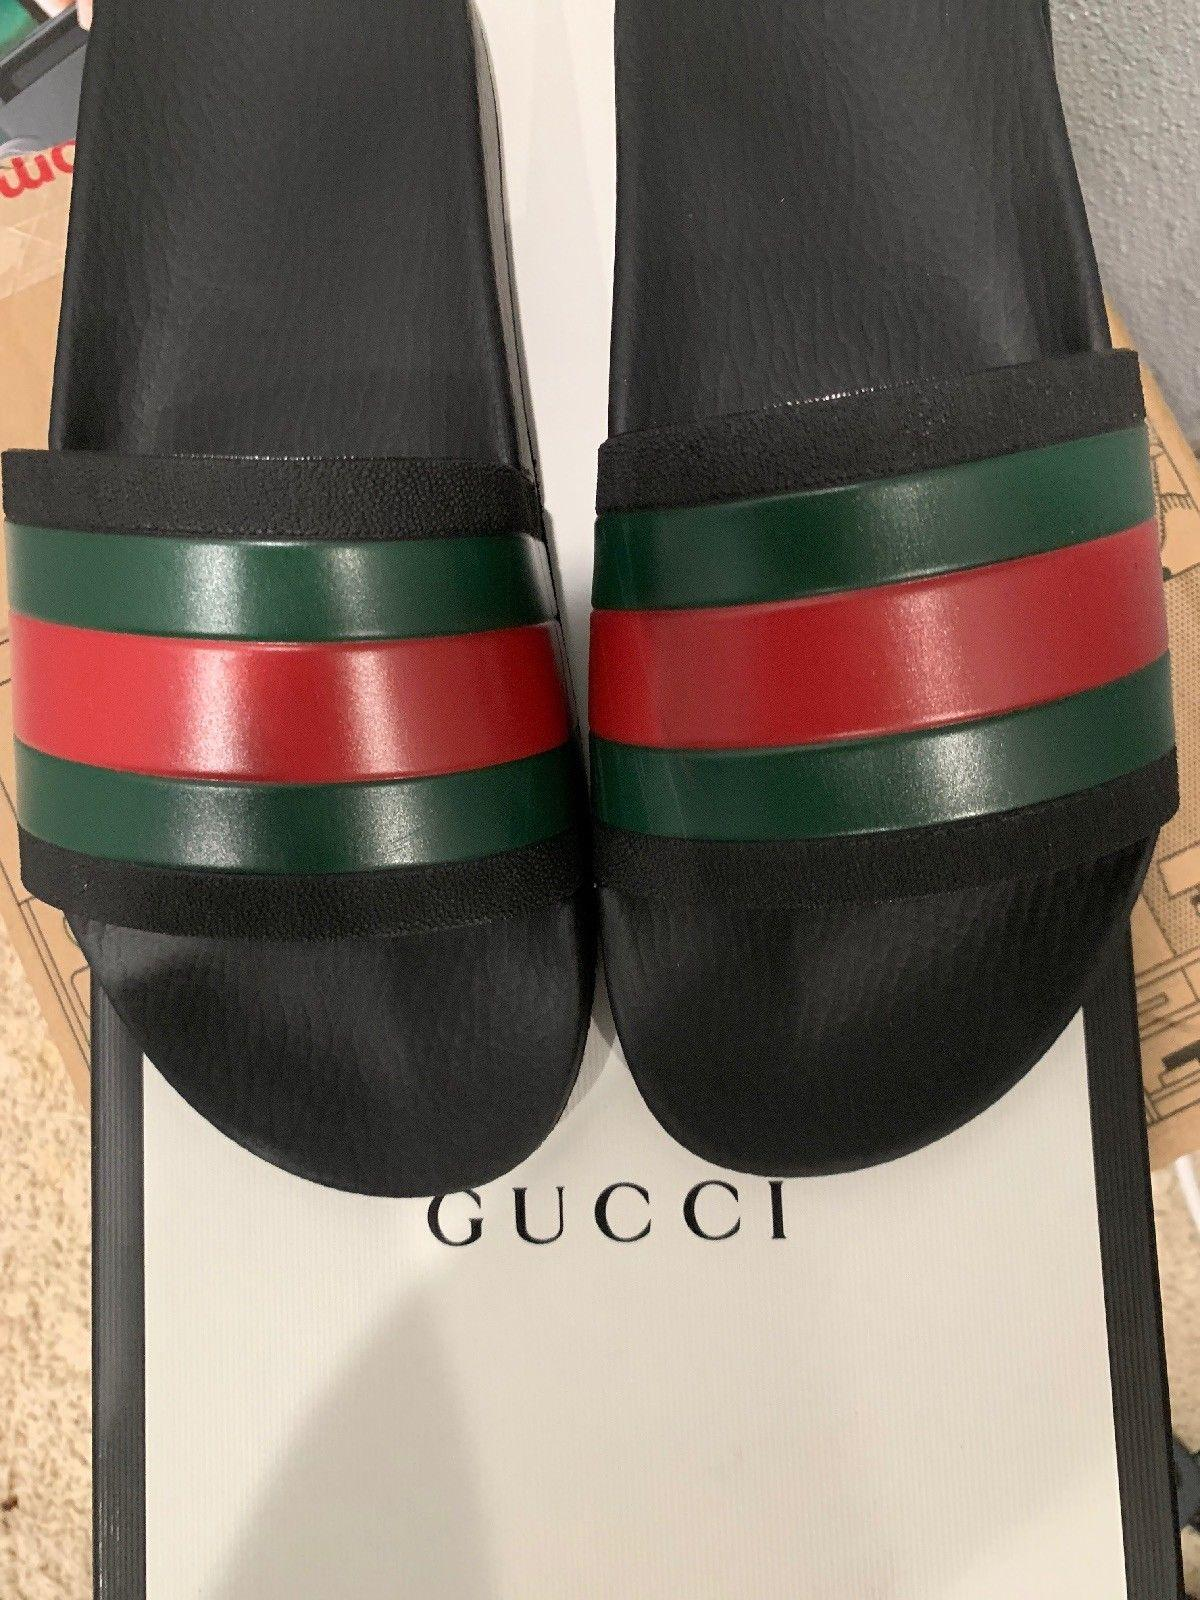 3416cfe4cb54 ... Gucci Pursuit Treck Jacquard Slide Sandals Blind For Love GG logo  slipper sandal 3 ...